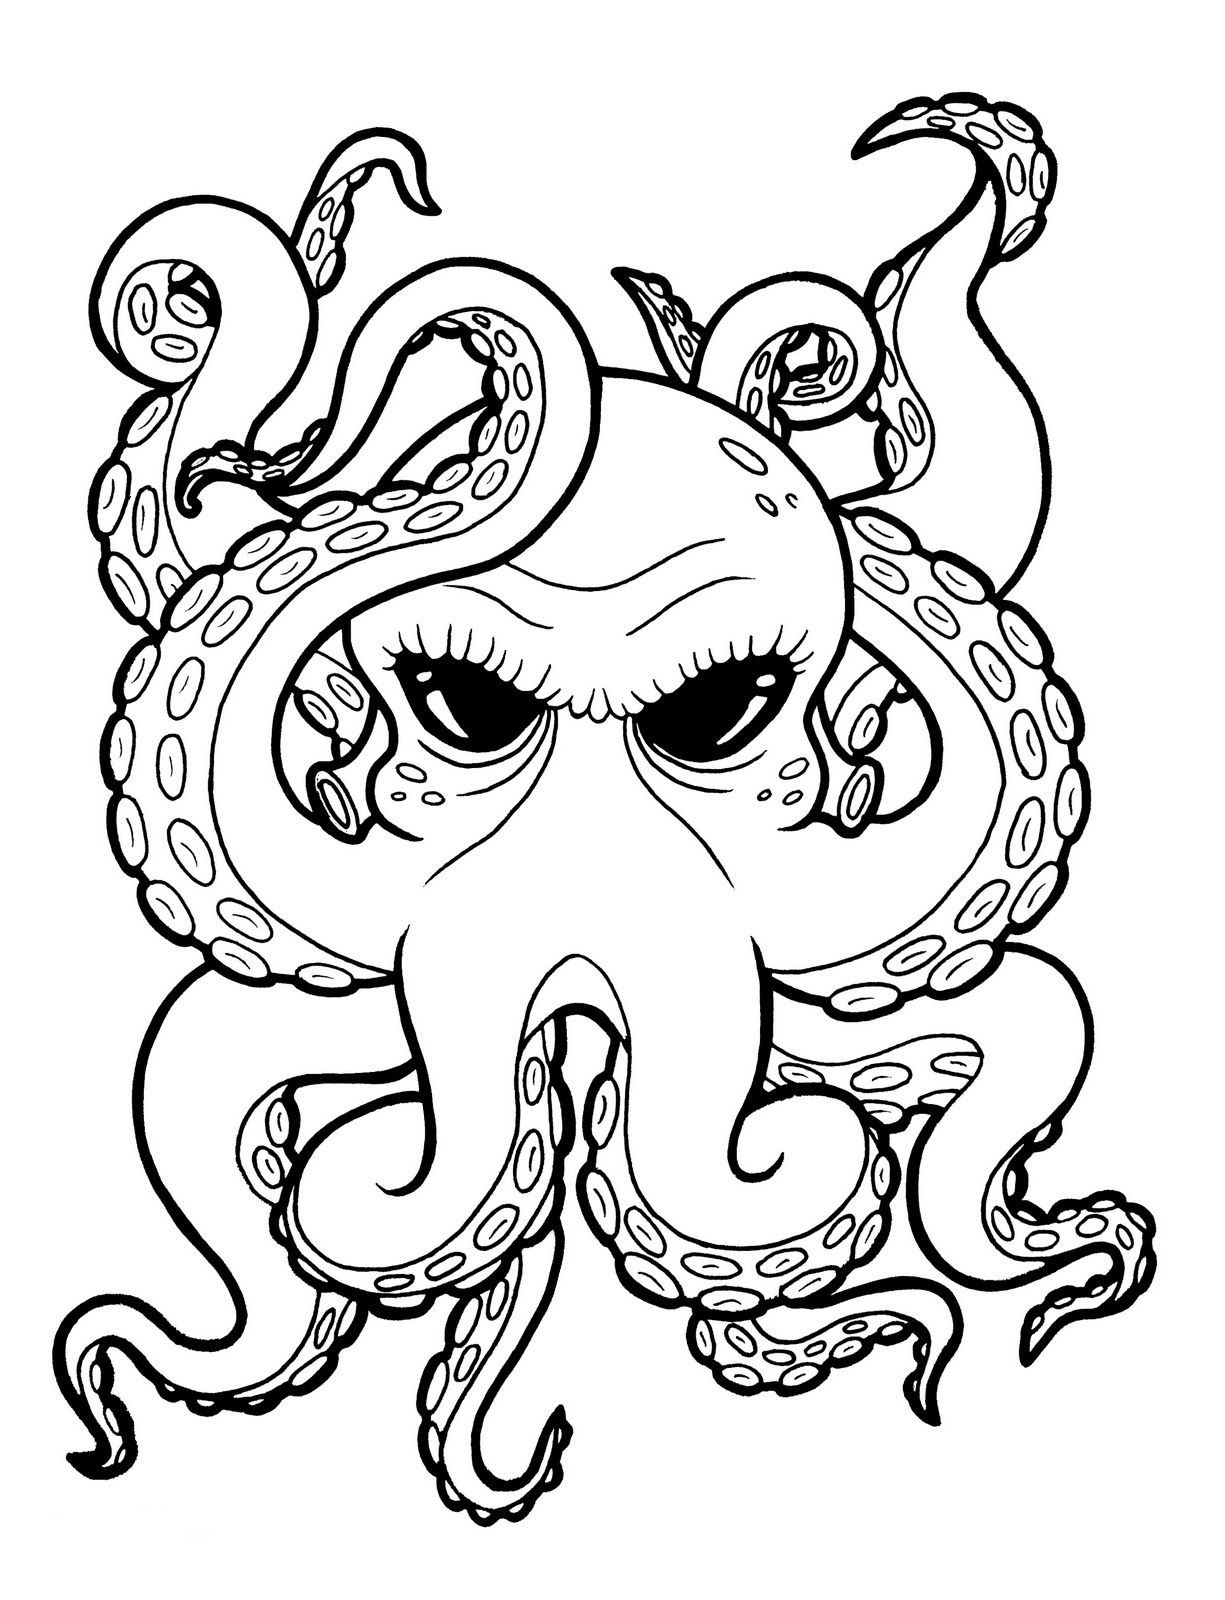 Tumblr Grey Octopus Tattoo Design photo - 1